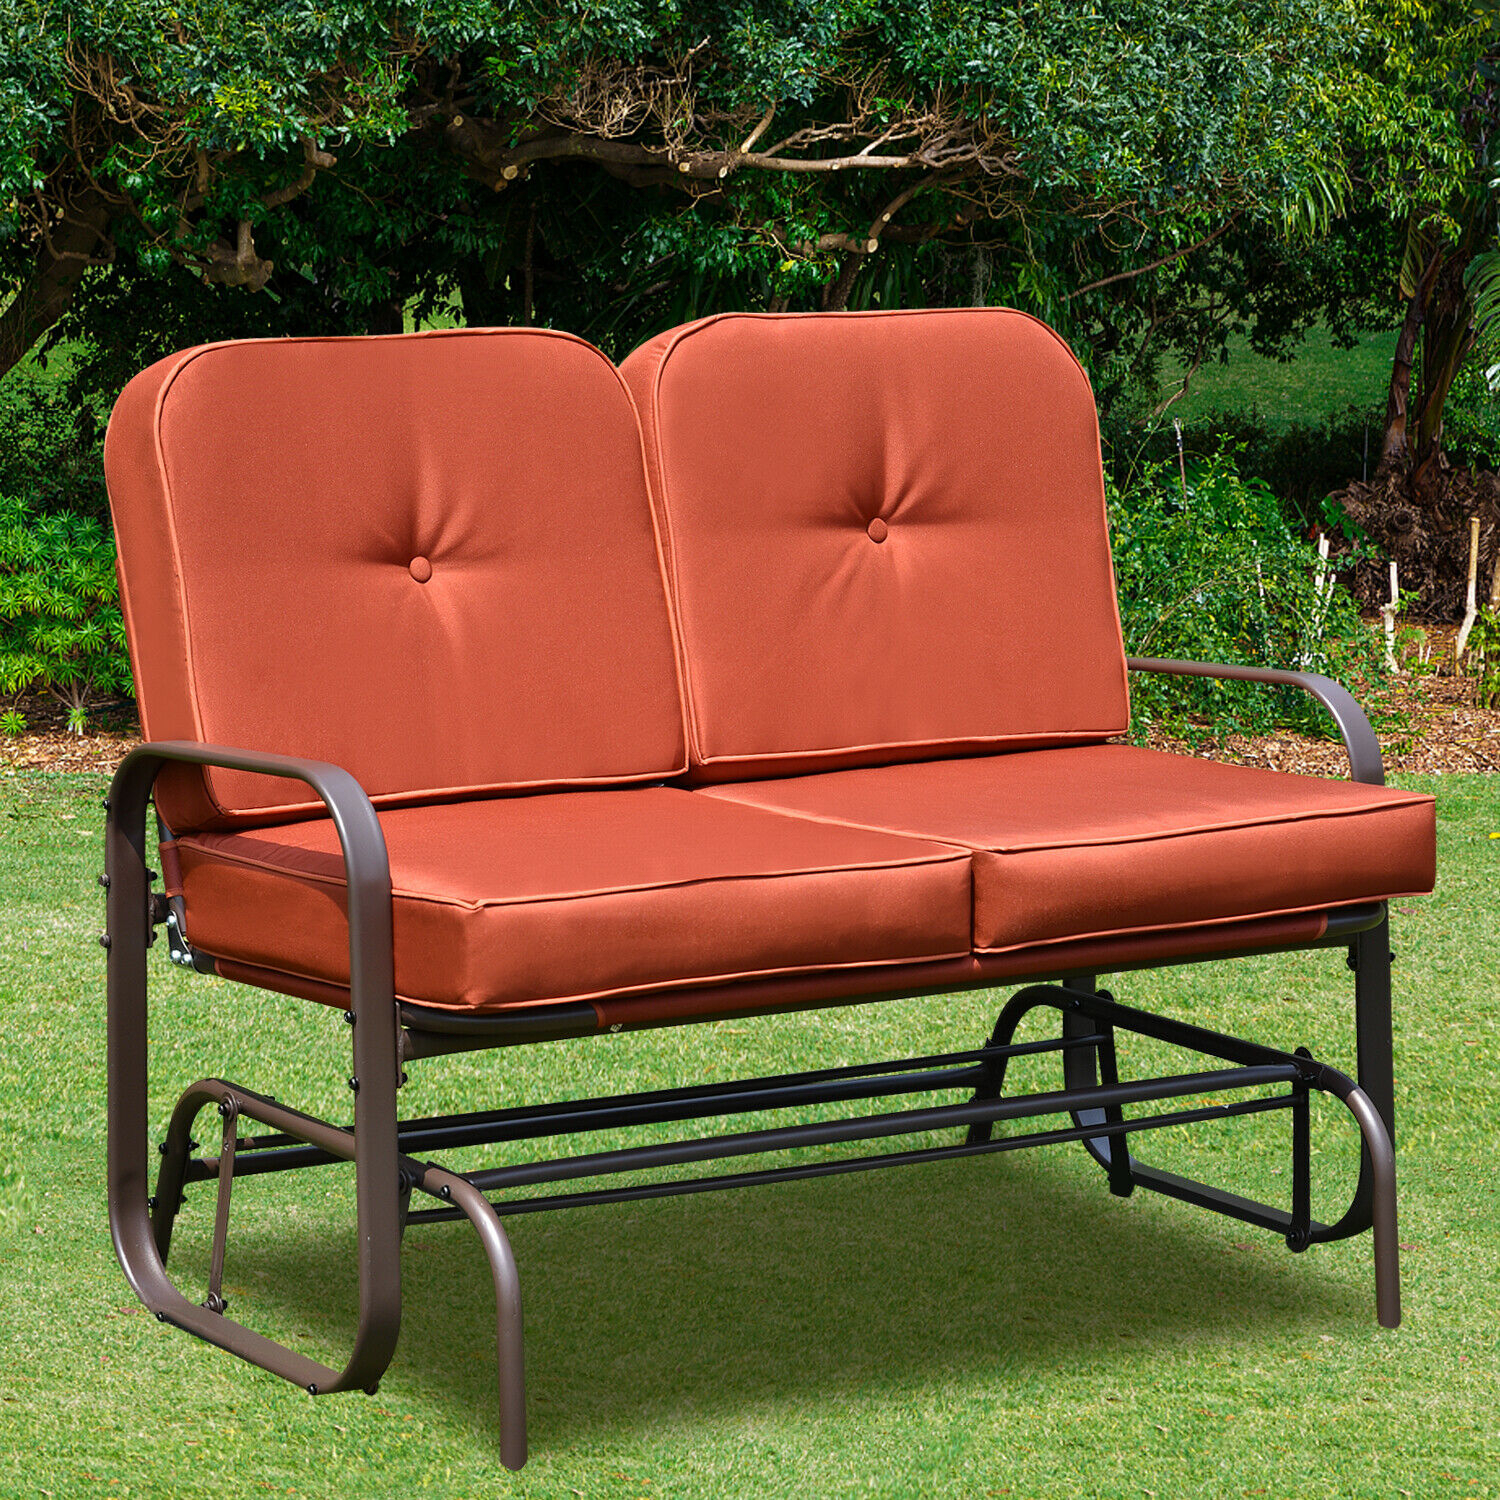 Patio Glider Bench Chair 2 Person Rocker Loveseat Outdoor Furniture W/  Cushions Within Double Glider Benches With Cushion (Image 19 of 25)